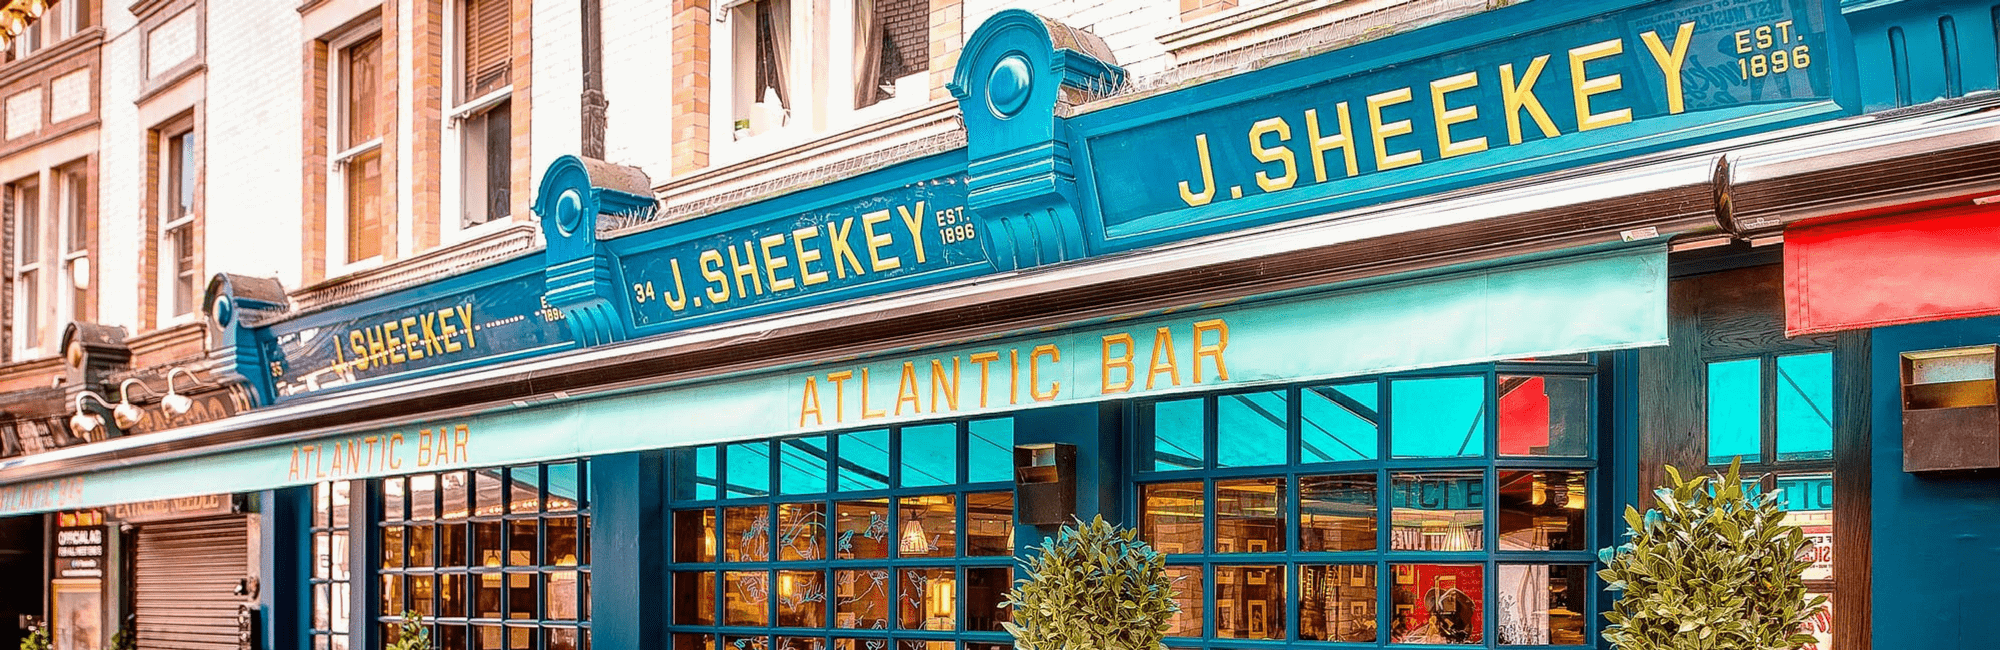 J Sheekey Atlantic Bar is a small plate fish and seafood restaurant located in the heart of London